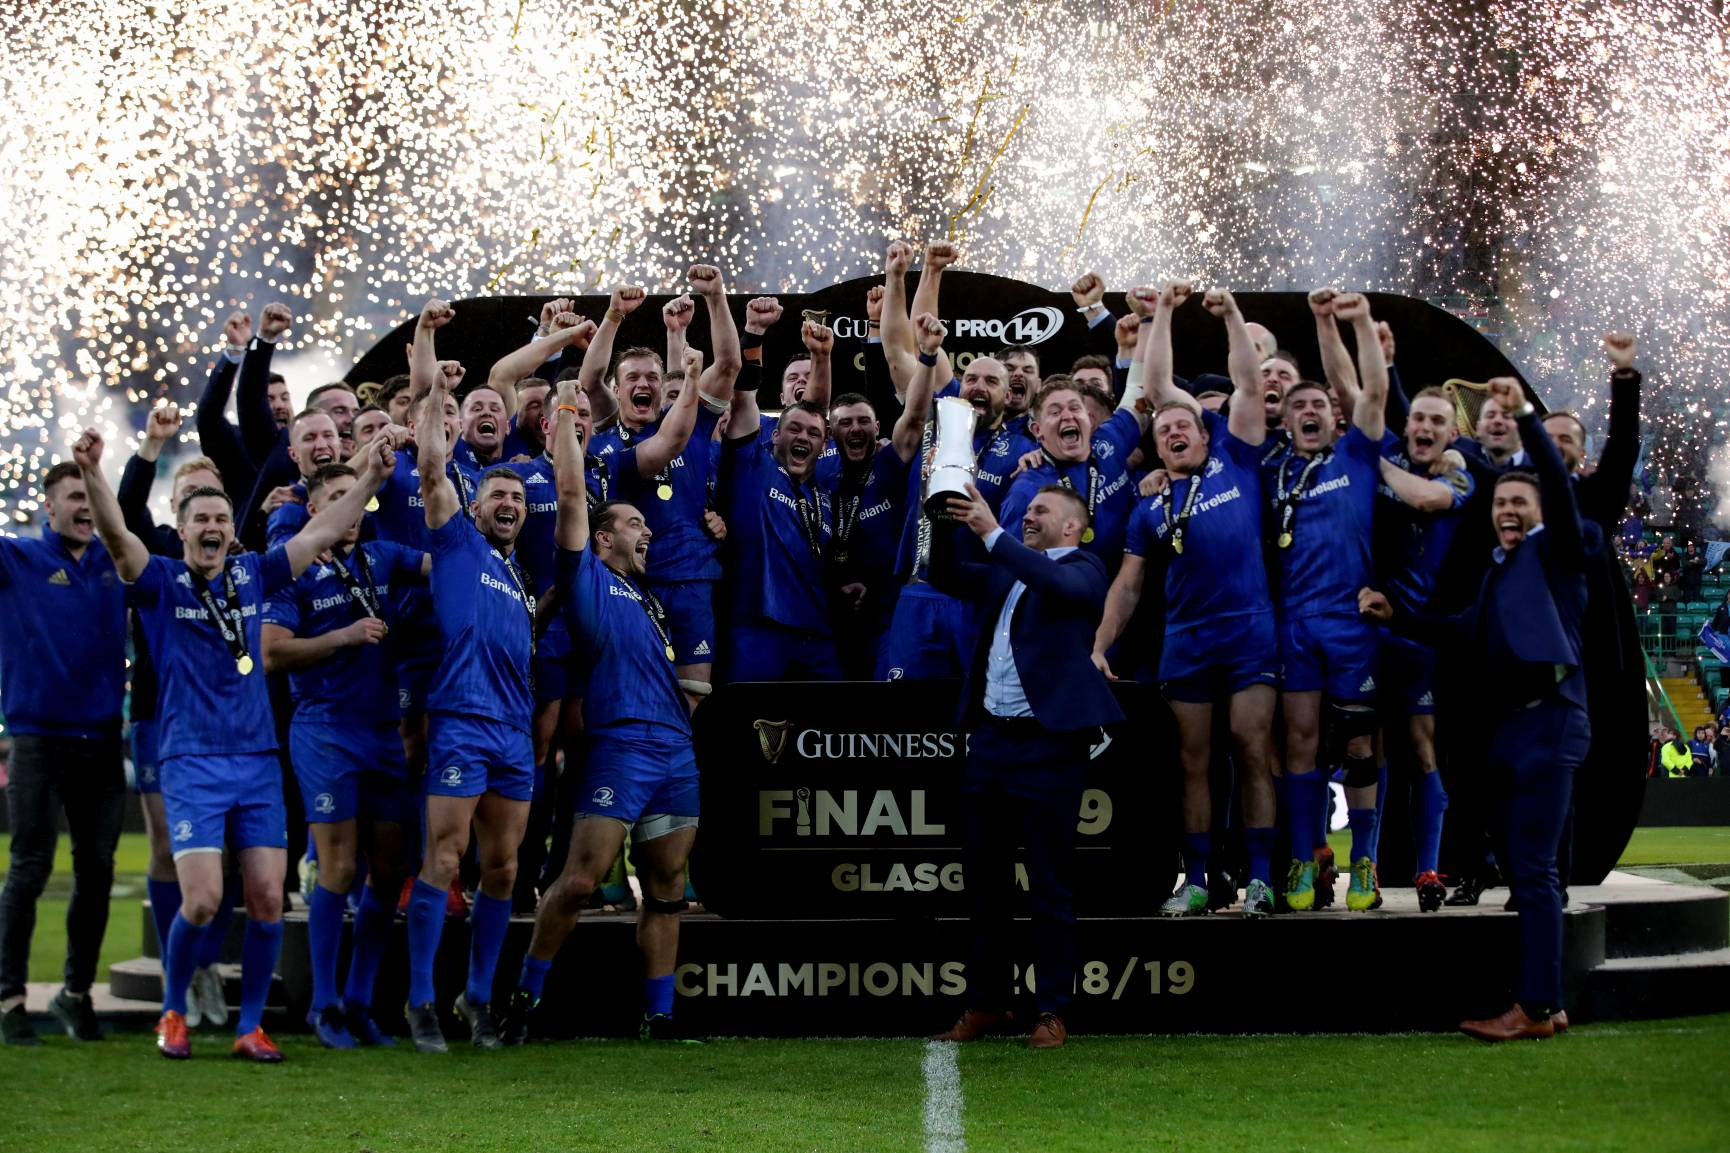 Irish Rugby | Leinster Show Champions' Mettle To Retain